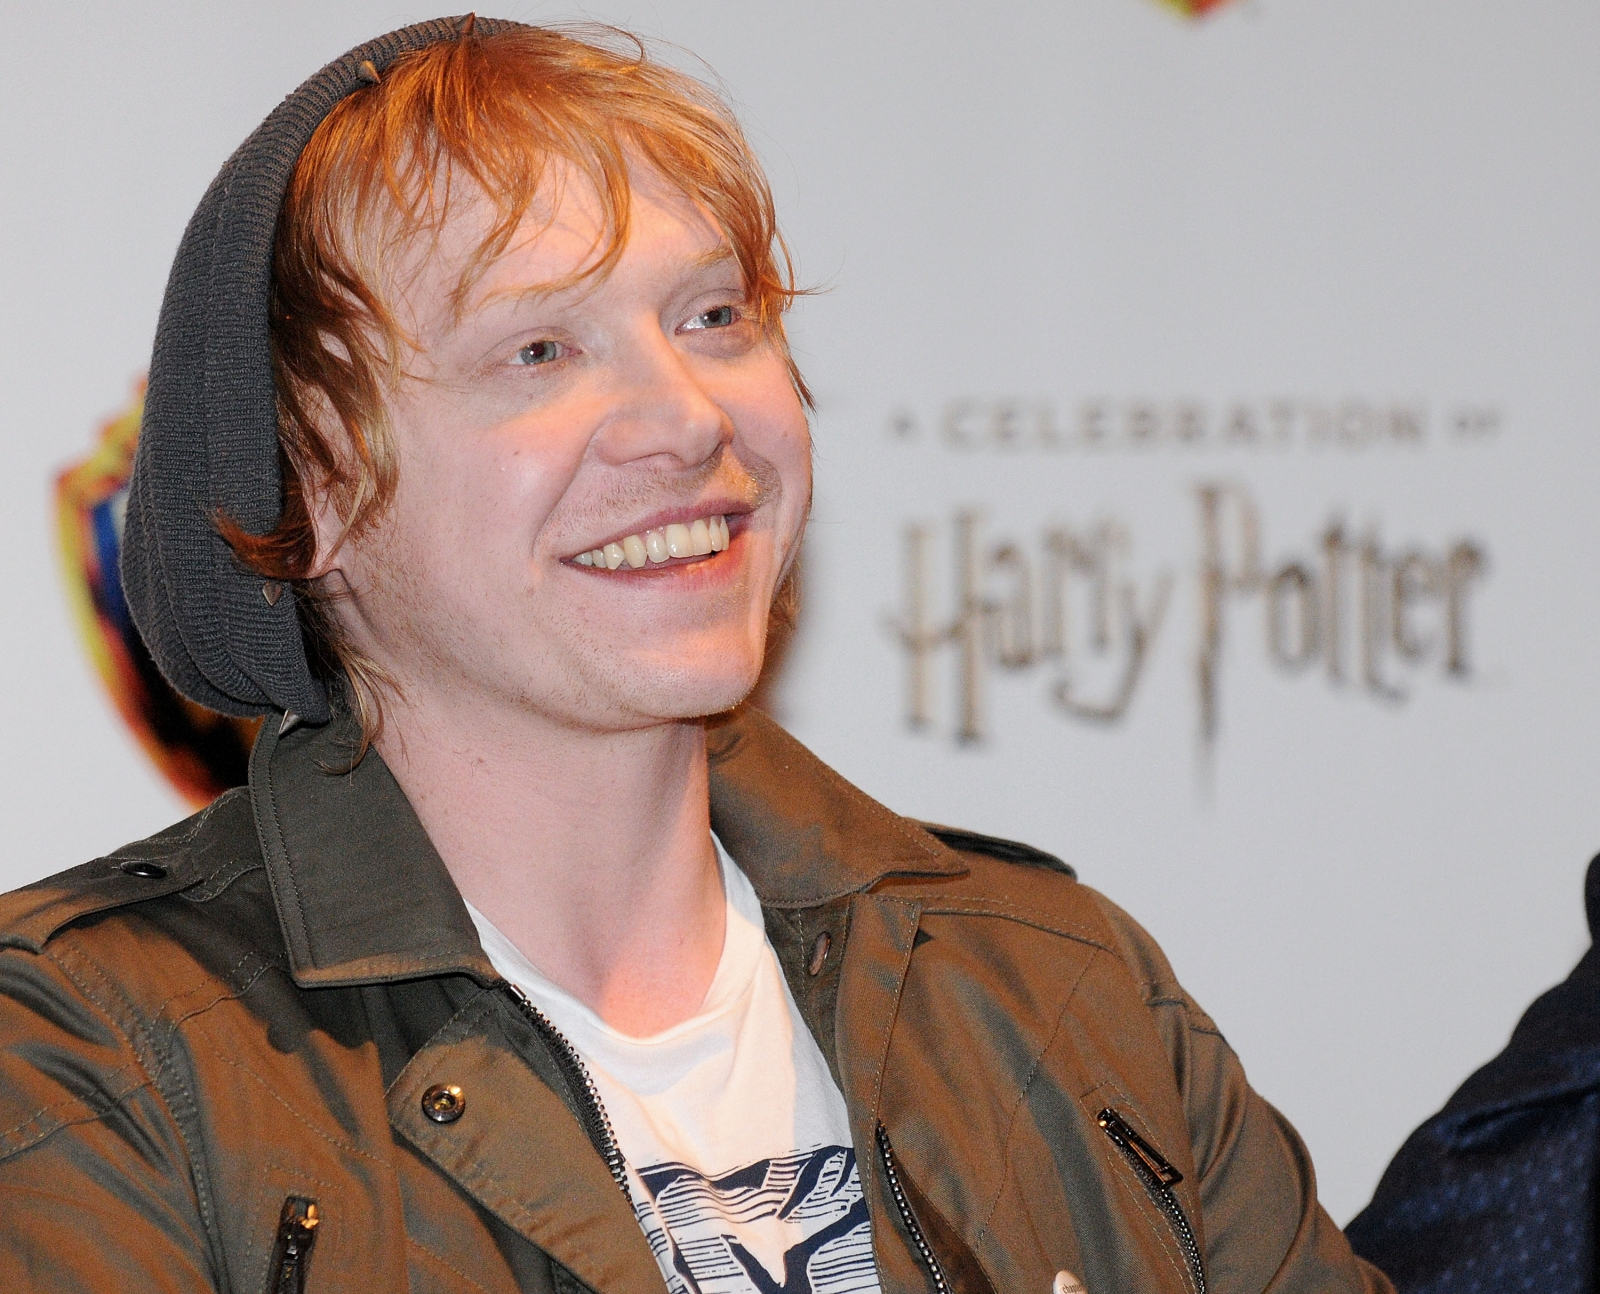 Rupert Grint to star in TV adaptation of Guy Ritchie's film Snatch